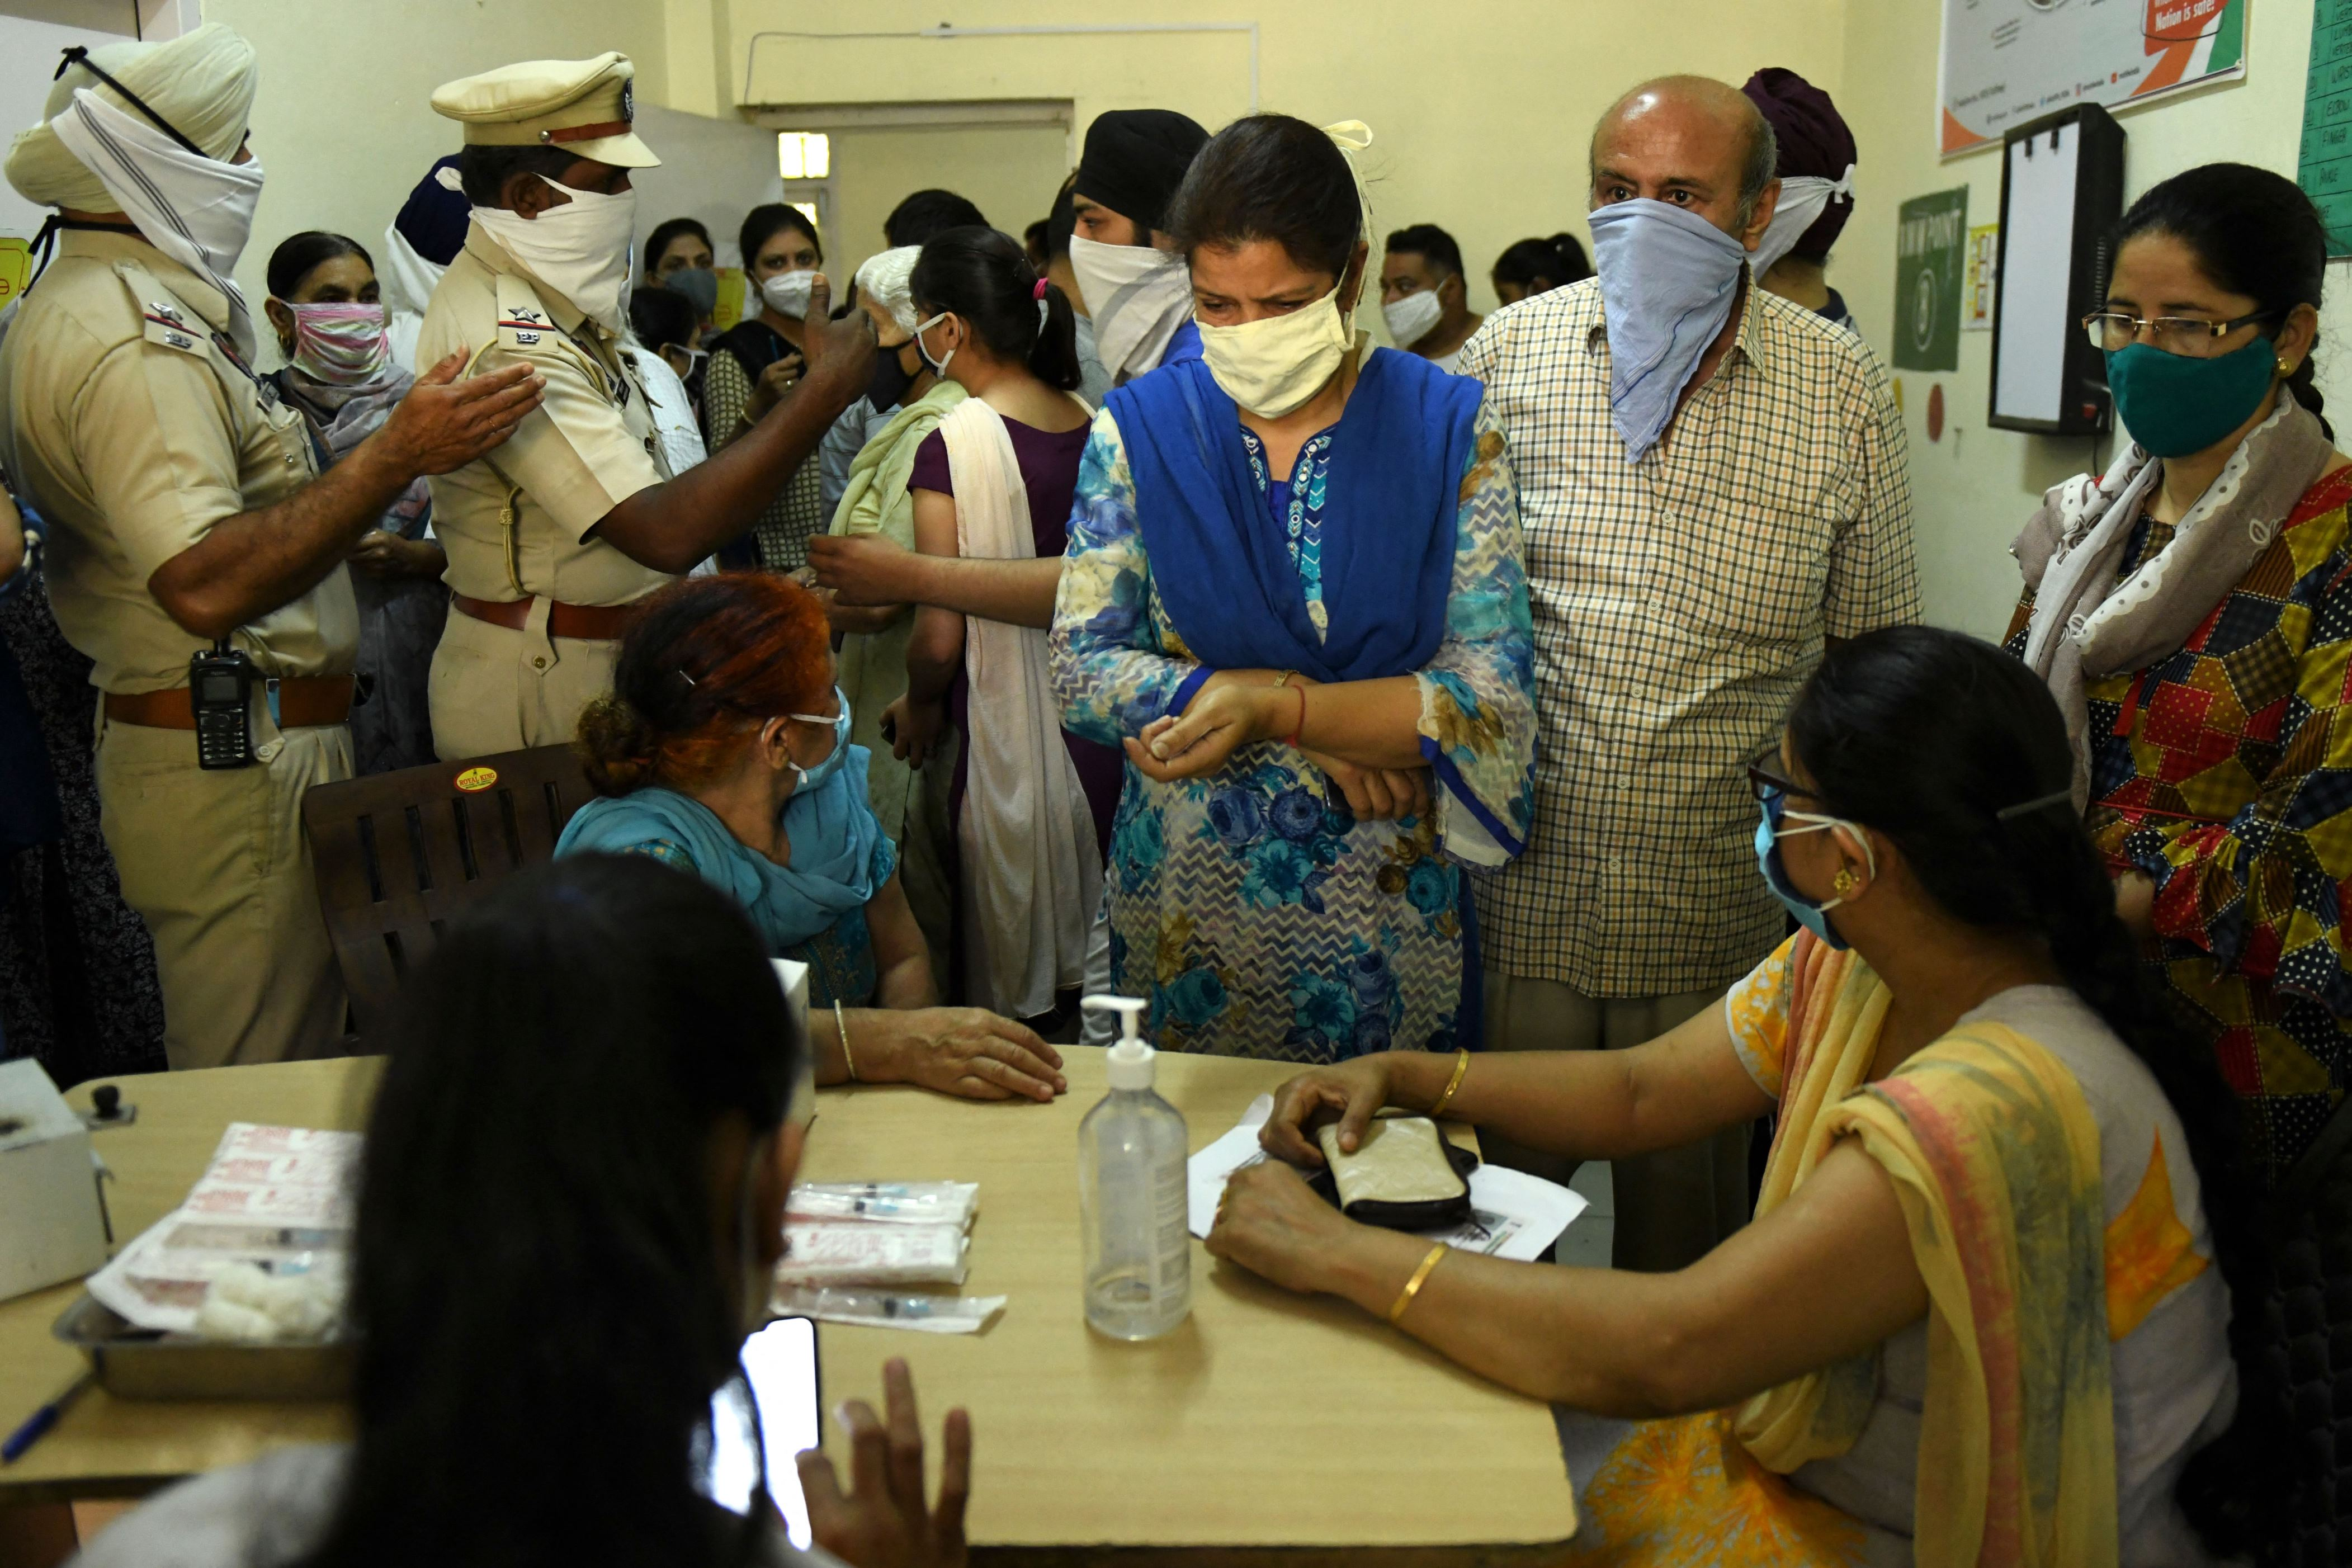 Britain set to ease Covid-19 lockdown, but huge India outbreak persists